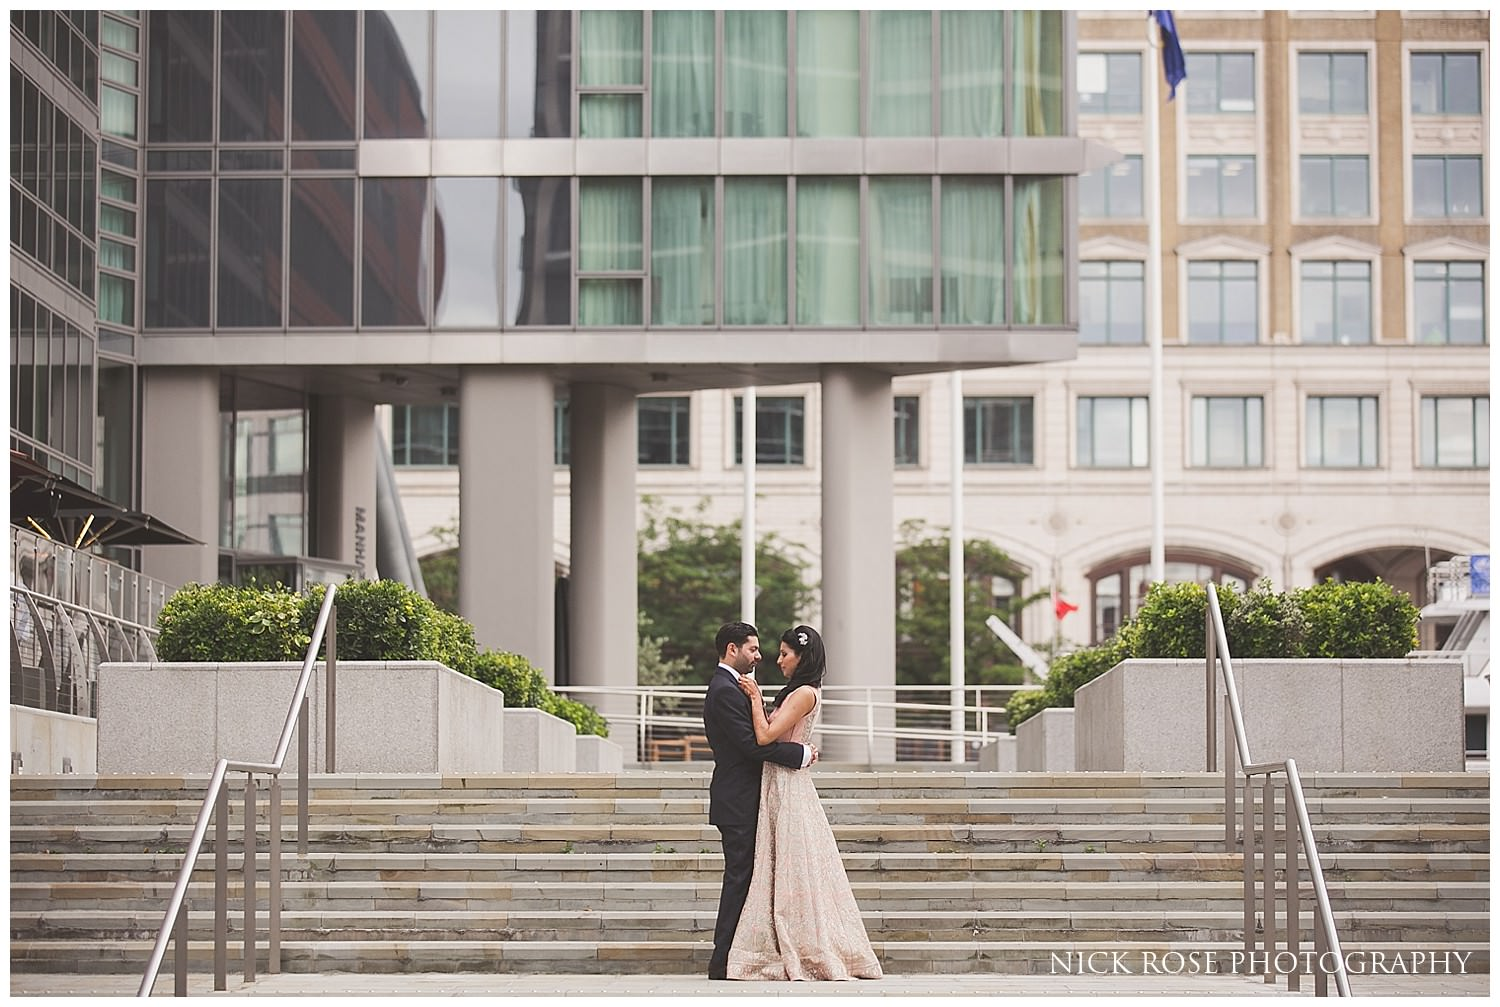 Indian wedding couple photograph on steps in London